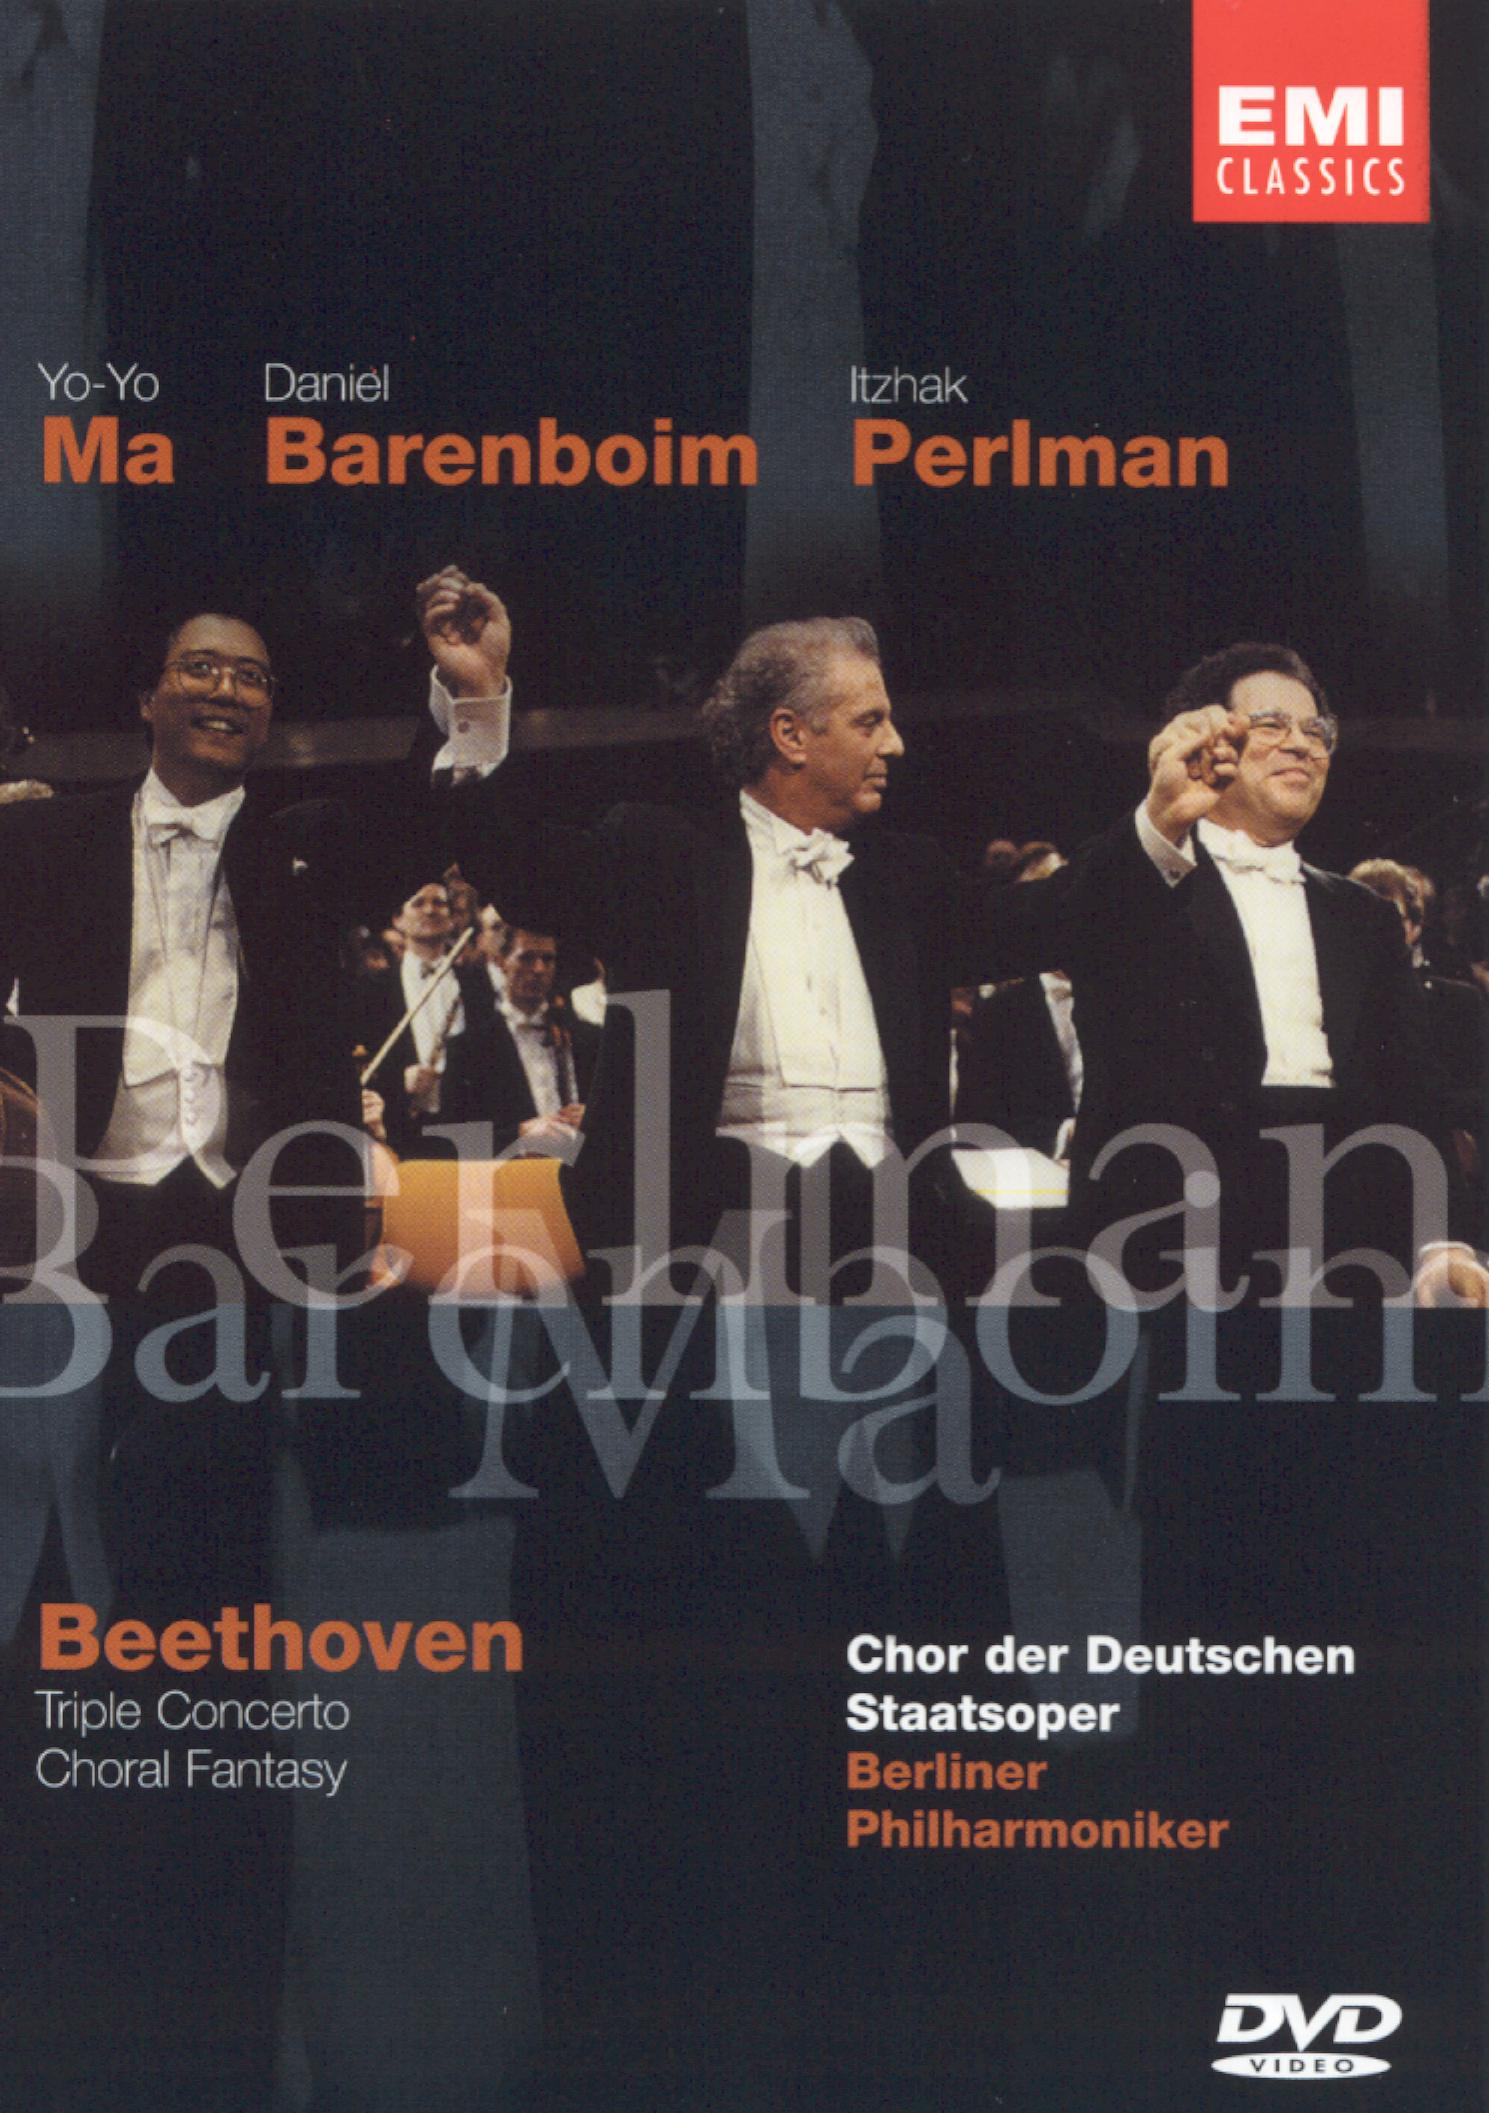 Beethoven: Triple Concerto and Choral Fantasy